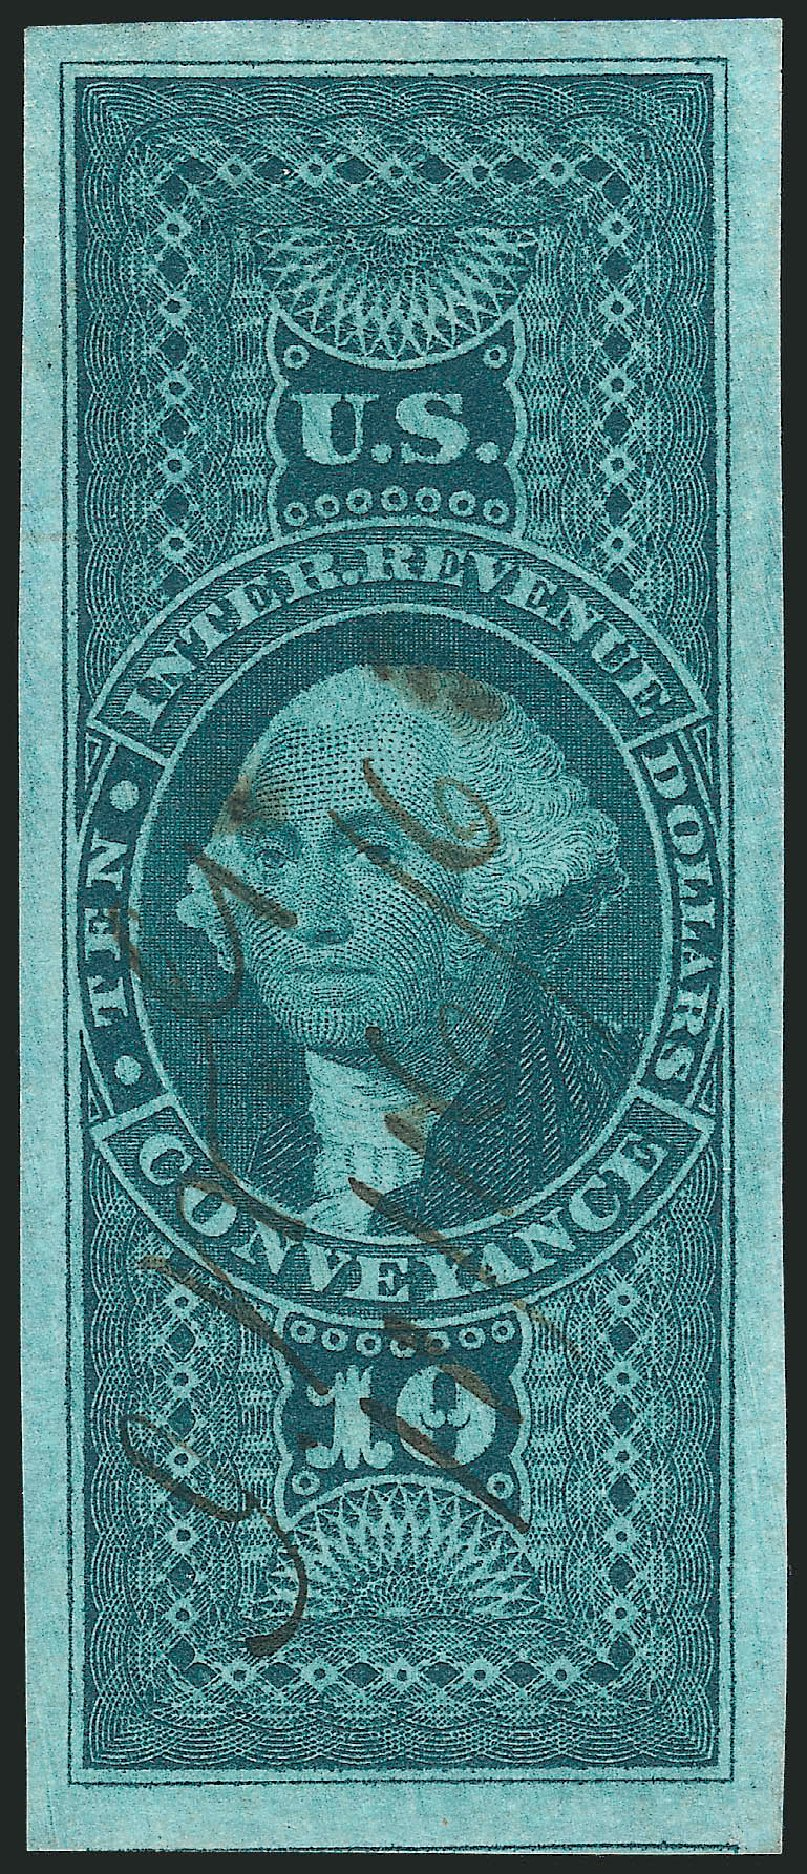 US Stamp Values Scott Catalogue #R94 - 1862 US$10.00 Revenue Conveyance. Robert Siegel Auction Galleries, Feb 2015, Sale 1092, Lot 1499